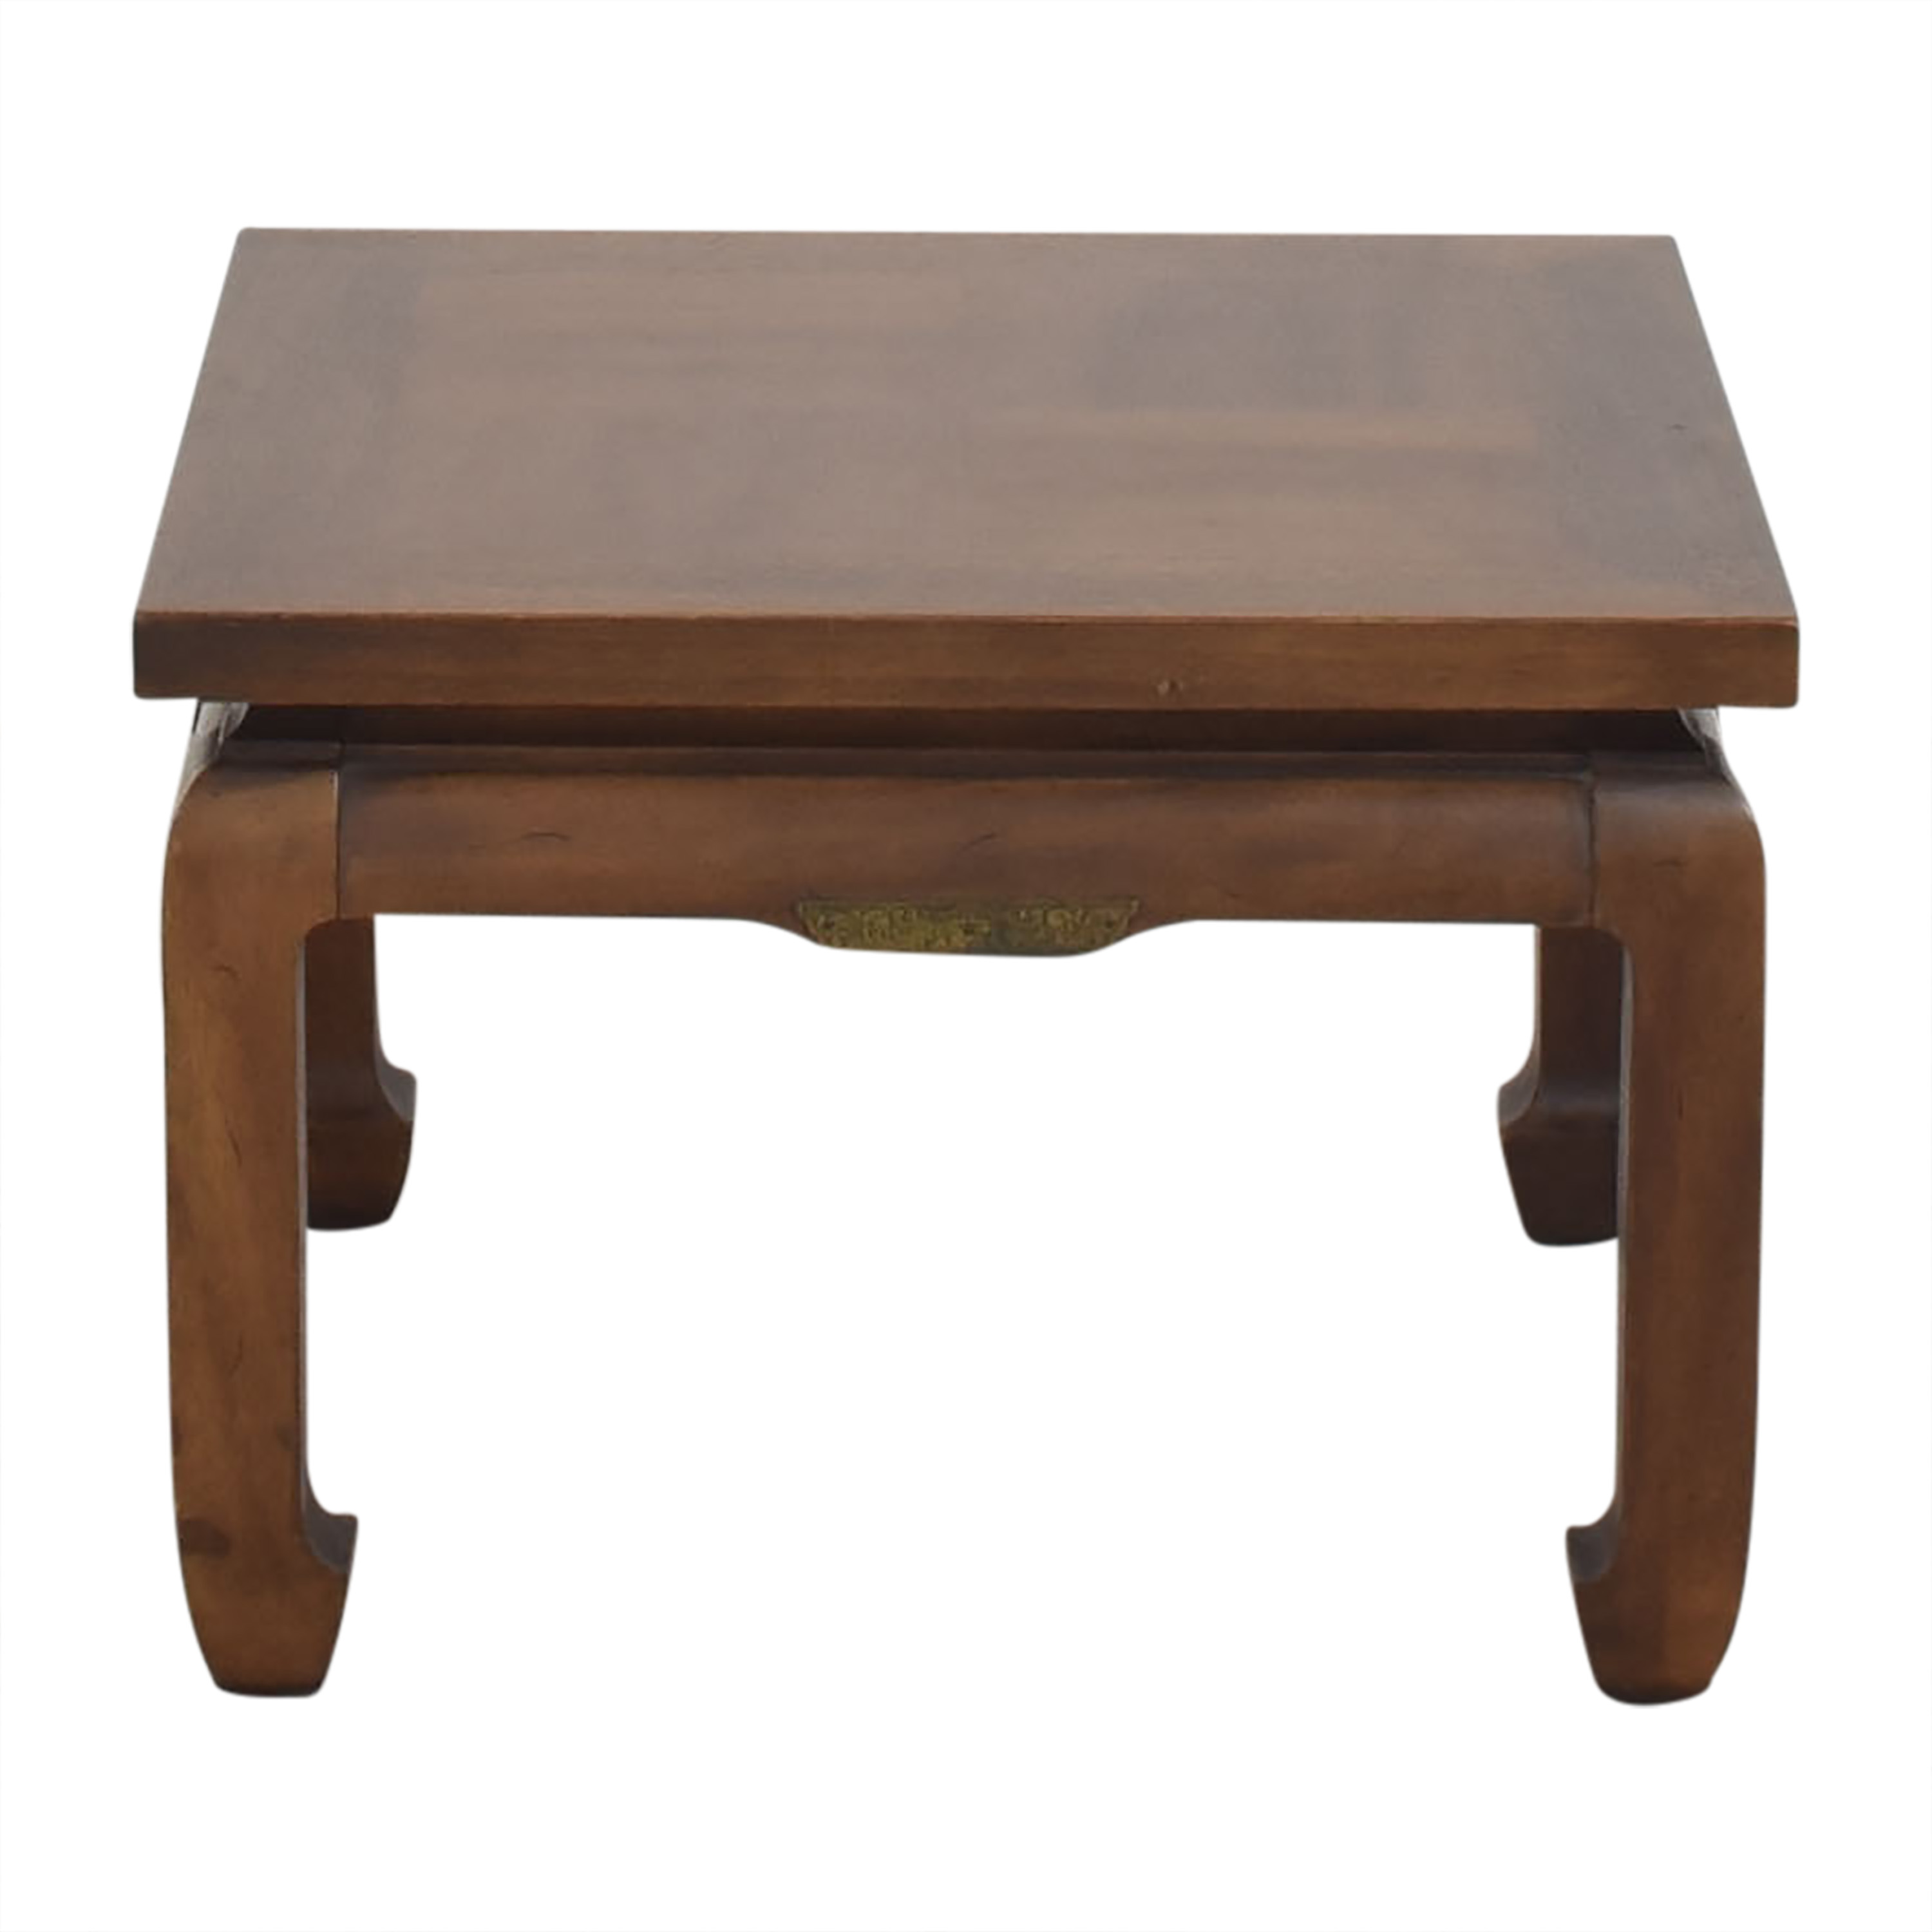 Century Furniture Century Furniture Square End Table  used